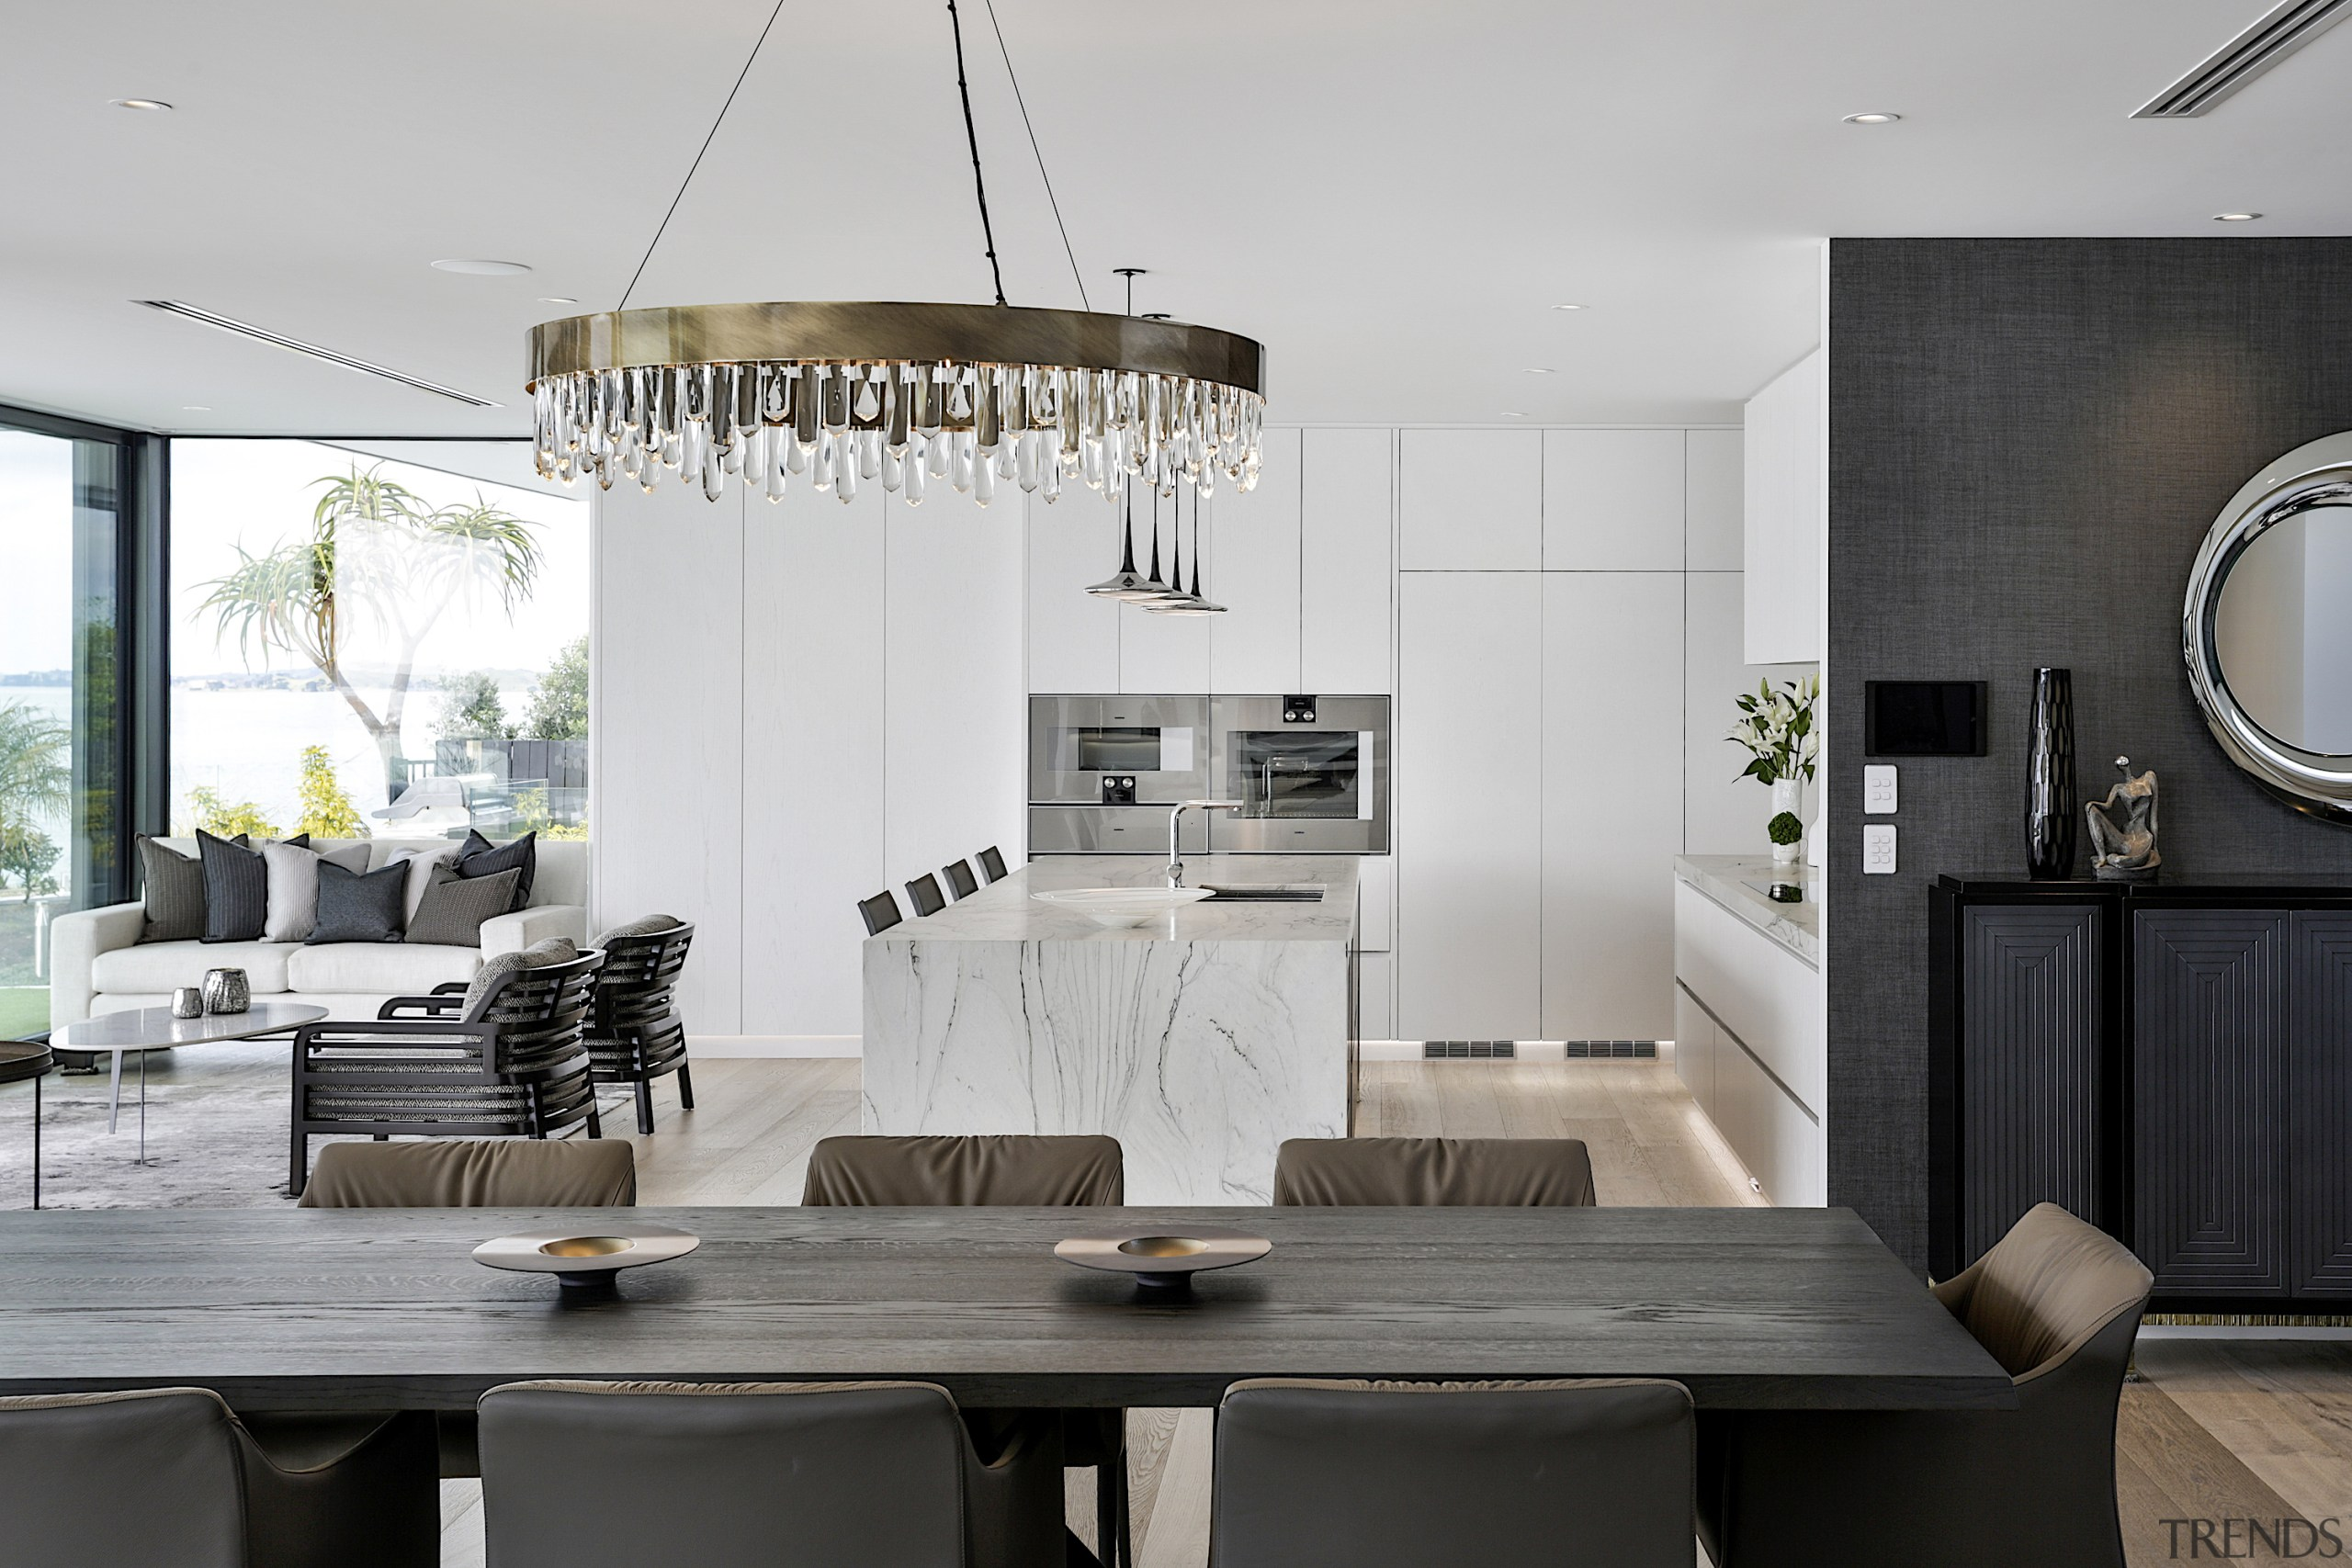 With the kitchen able to be viewed from gray, black